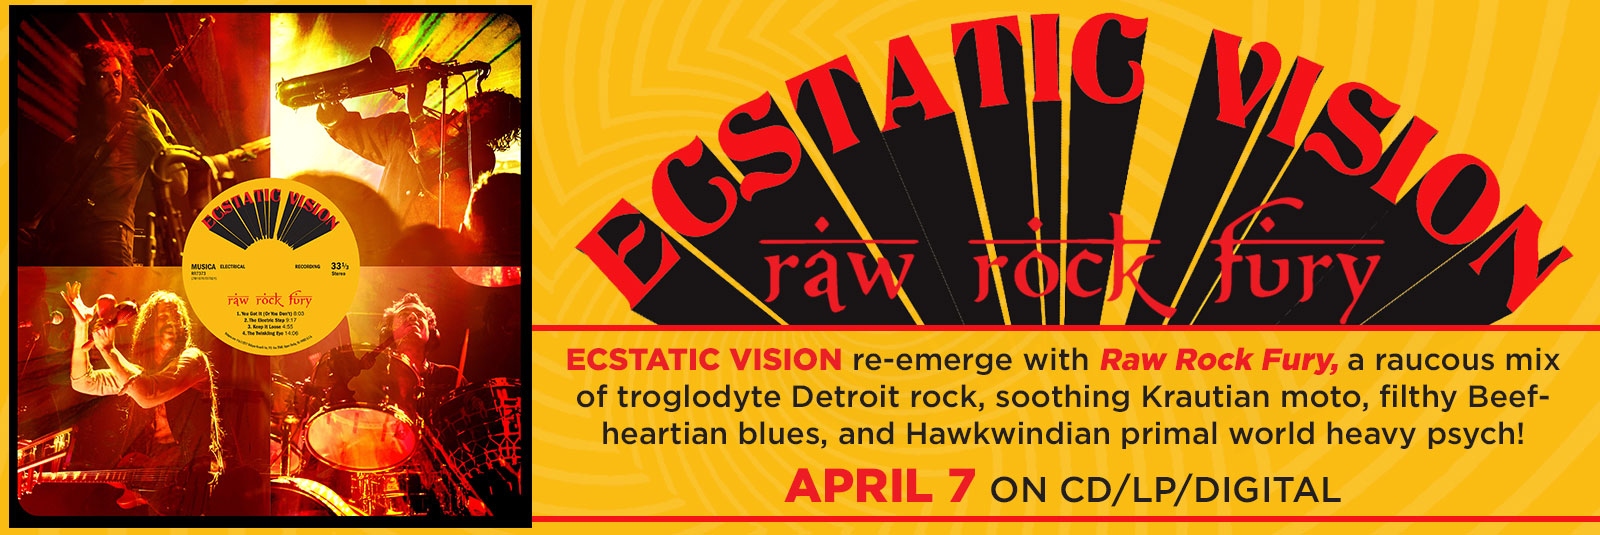 ecstatic-vision-raw-rock-fury